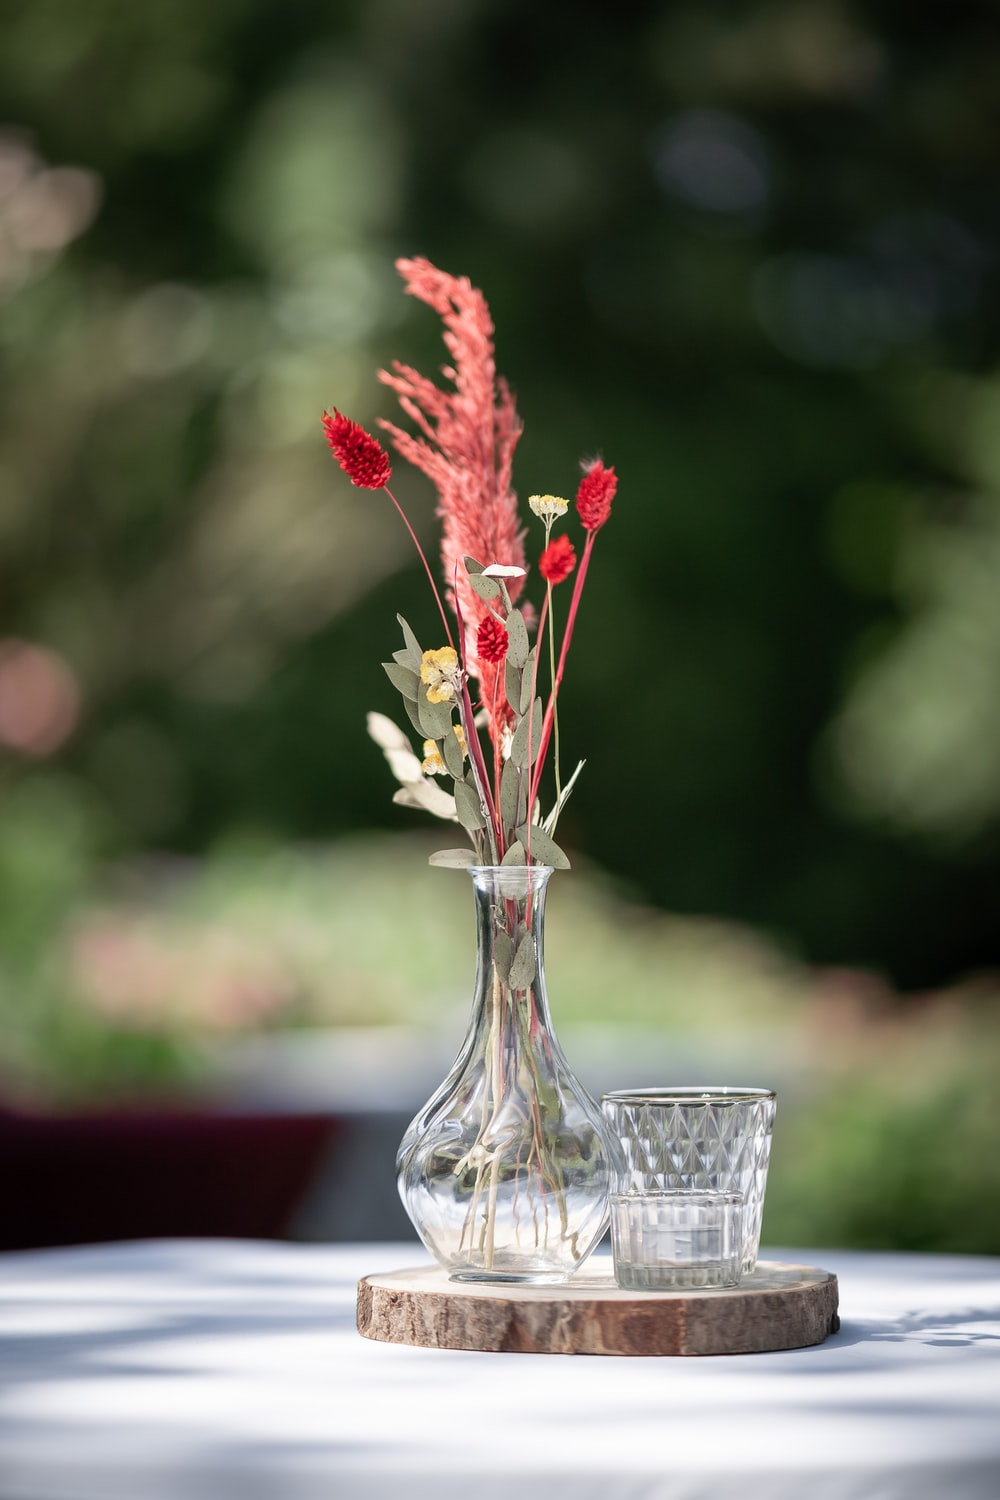 red flower in clear glass vase